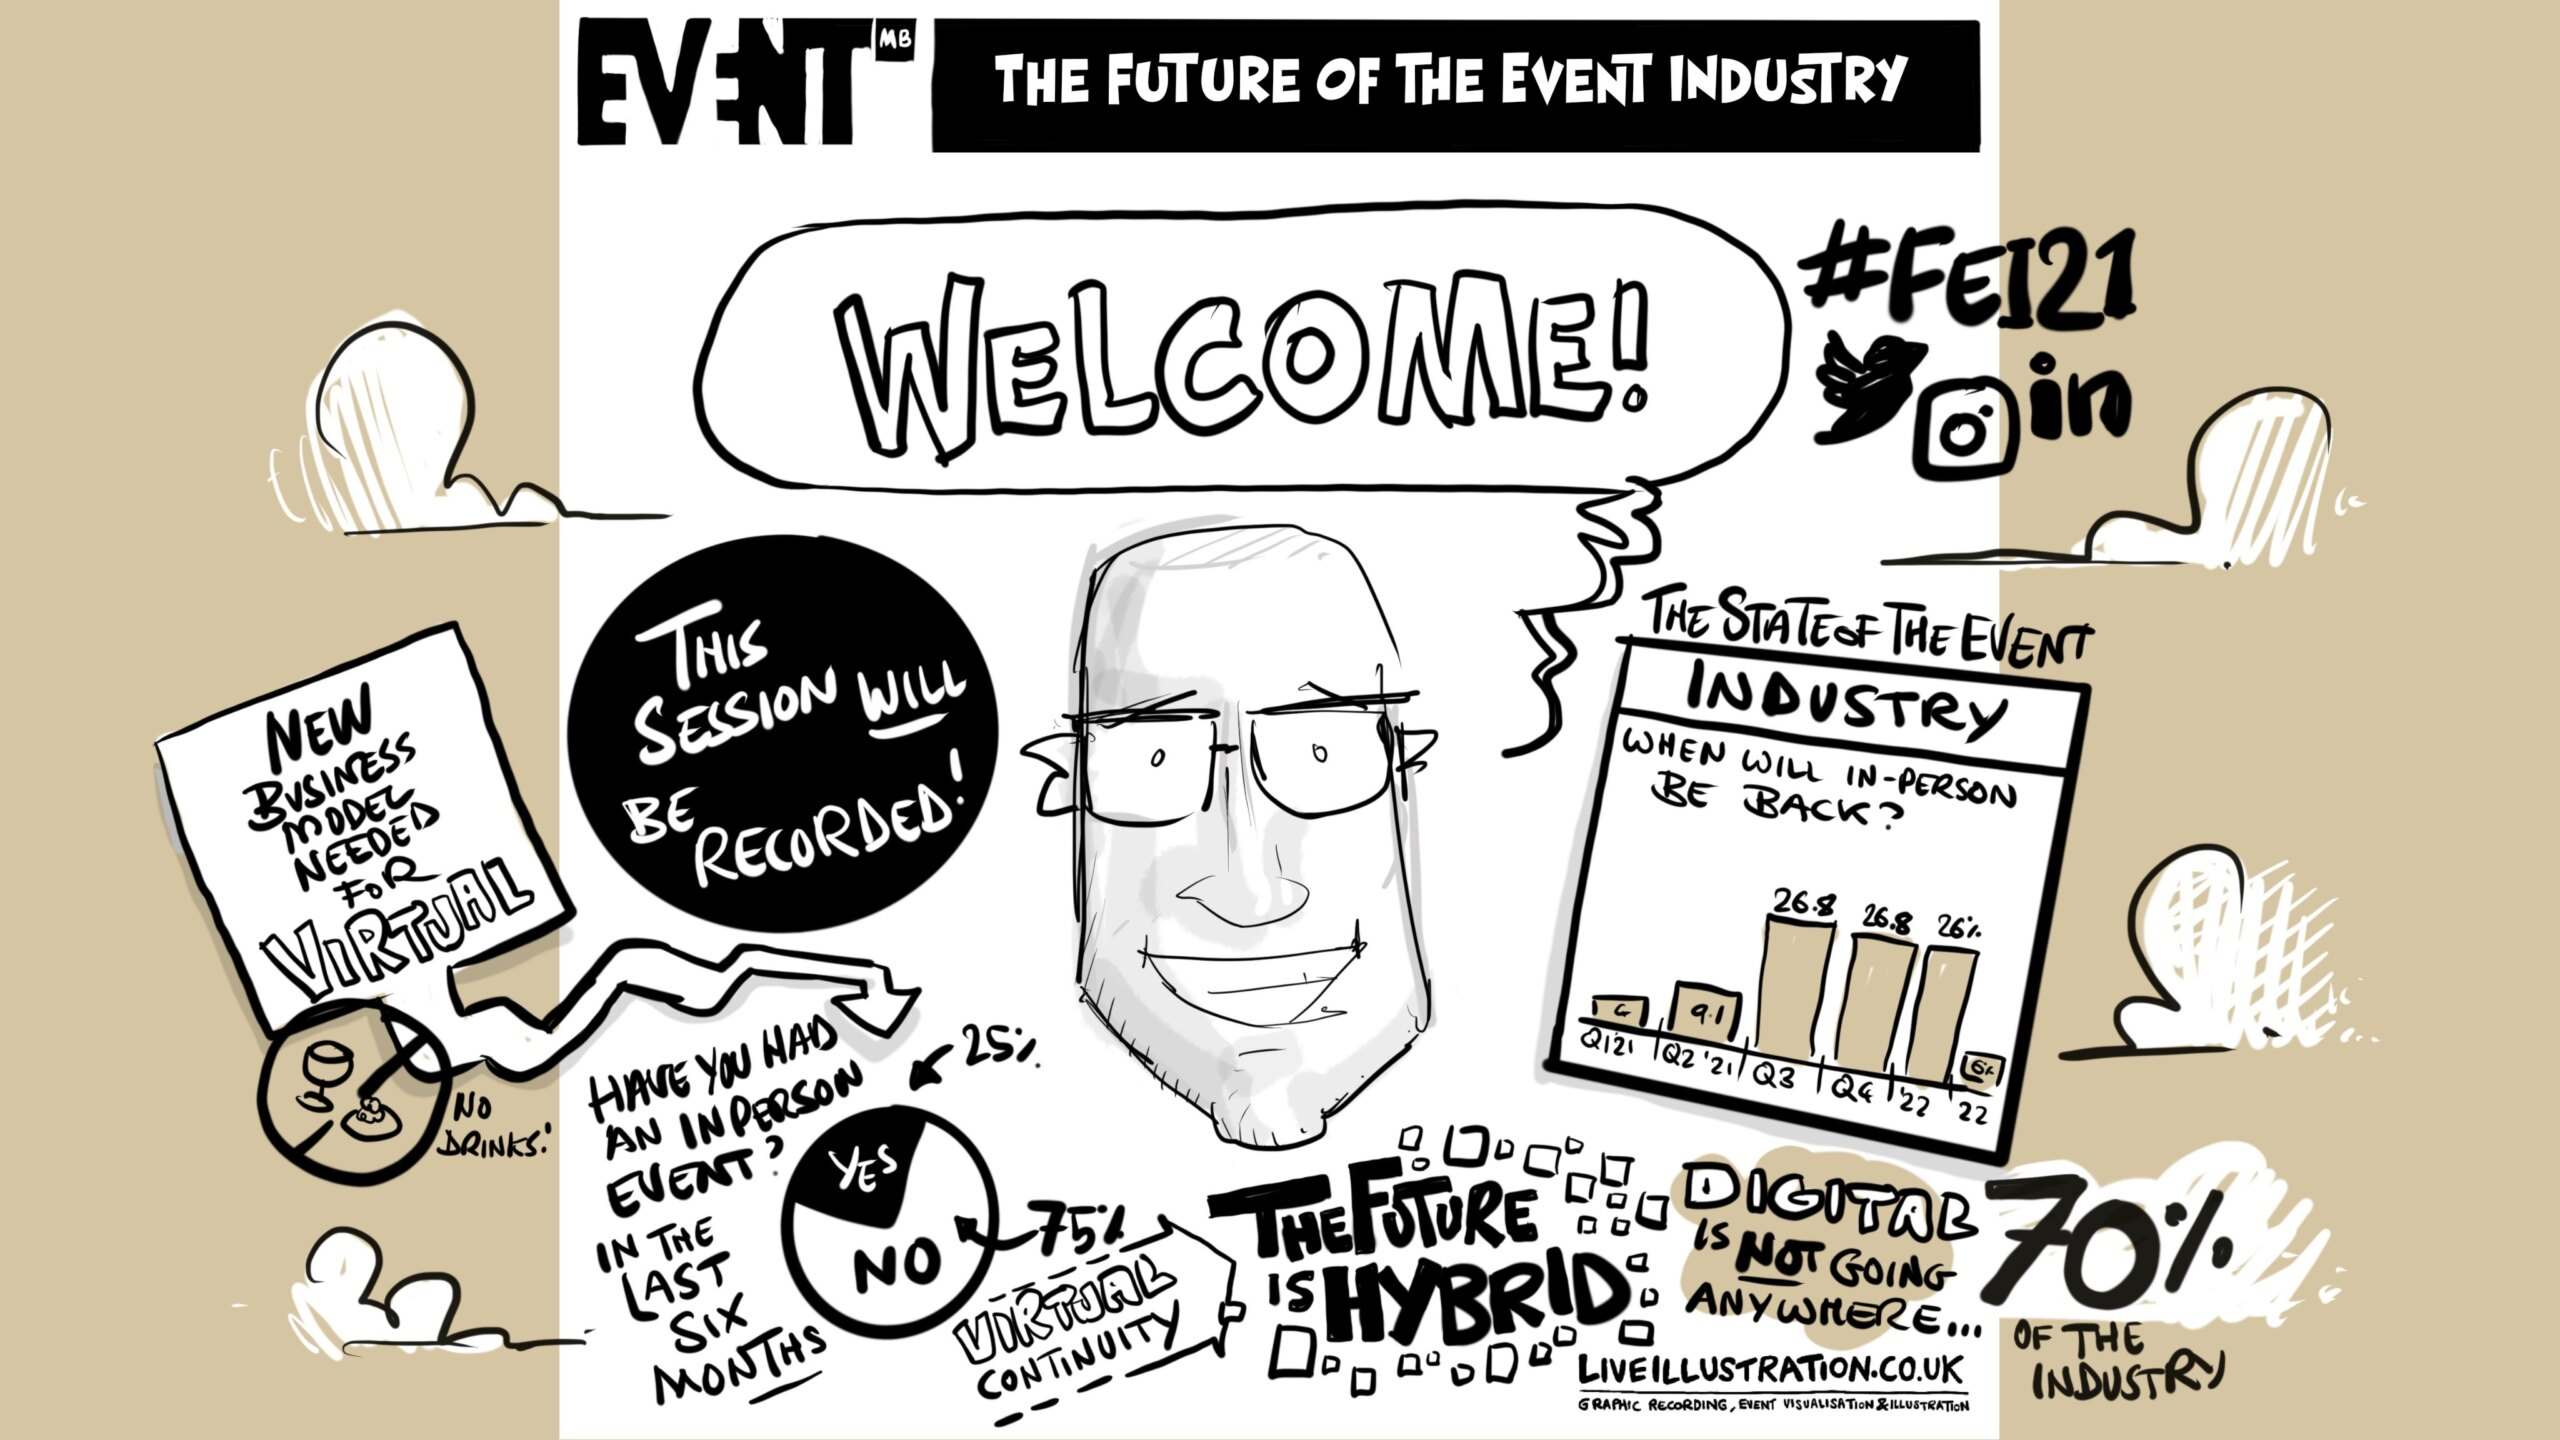 Recapping EventMB's 'The Future of the Event Industry 2021 Outlook'